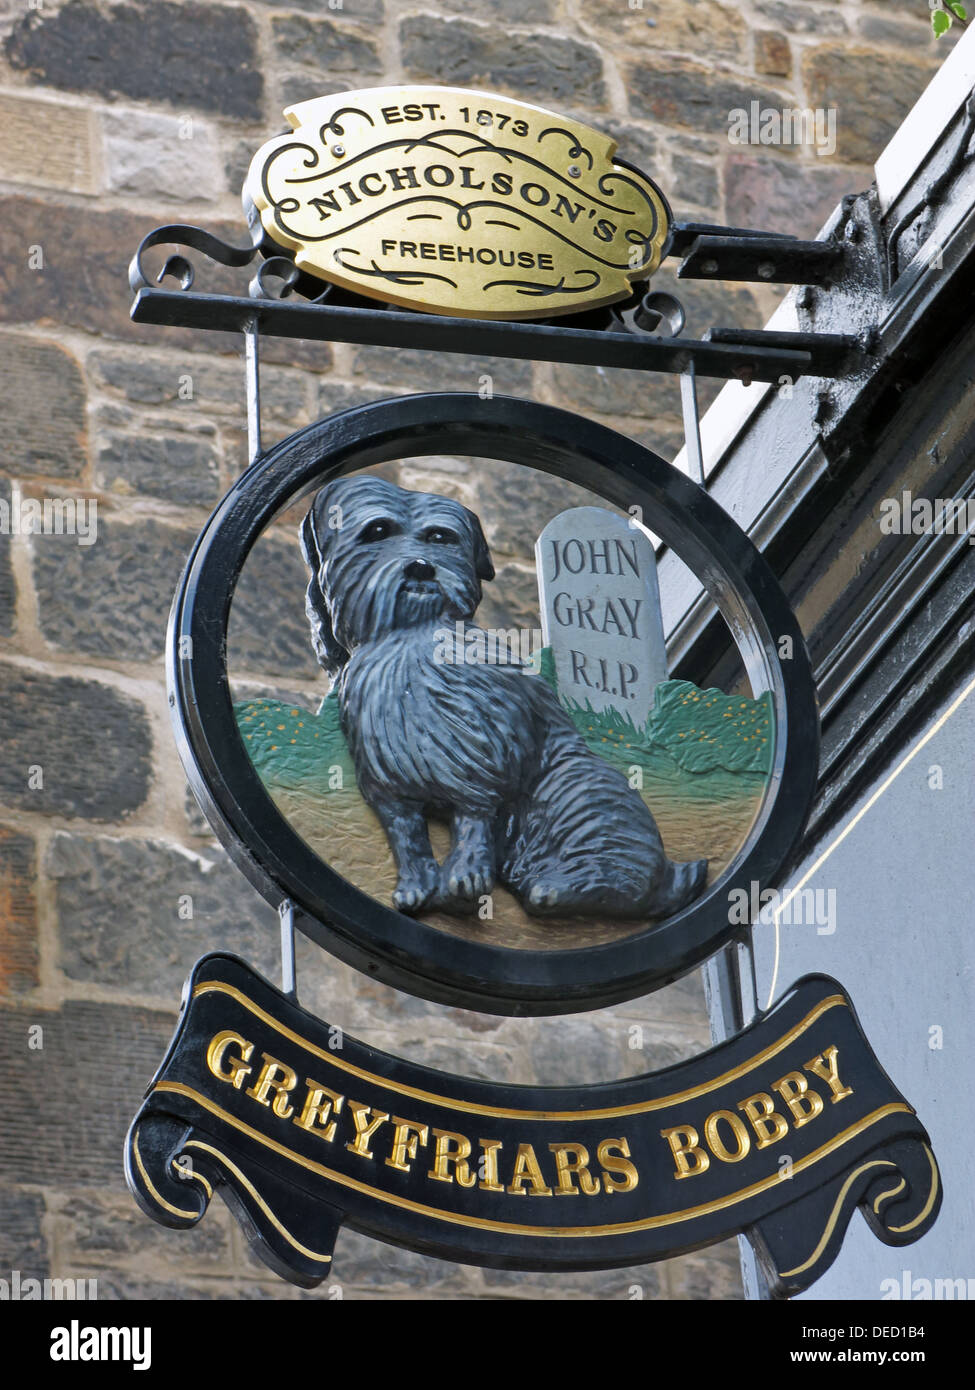 Scottish,classic,public,house,CAMRA,Grayfriars,Gray,Friar,Friars,Grey,bar,bars,in,Church,yard,churchyard,gravestone,graveyard,grave,graves,graveyards,gravestones,sign,statue,Skye,Terrier,old,town,John,Gray,kirk,yard,kirkyard,gate,famous,Pub,sign,Nicholsons,Nicholsons,Nicholson,gotonysmith,oldtown,JohnGray,Lady,Burdett-Coutts,Burdett,Coutts,Jan,Bondeson,faithful,dog,dogs,Devotion,Scotsman,scotsmen,tourism,tourist,attraction,oldtown,Buy Pictures of,Buy Images Of